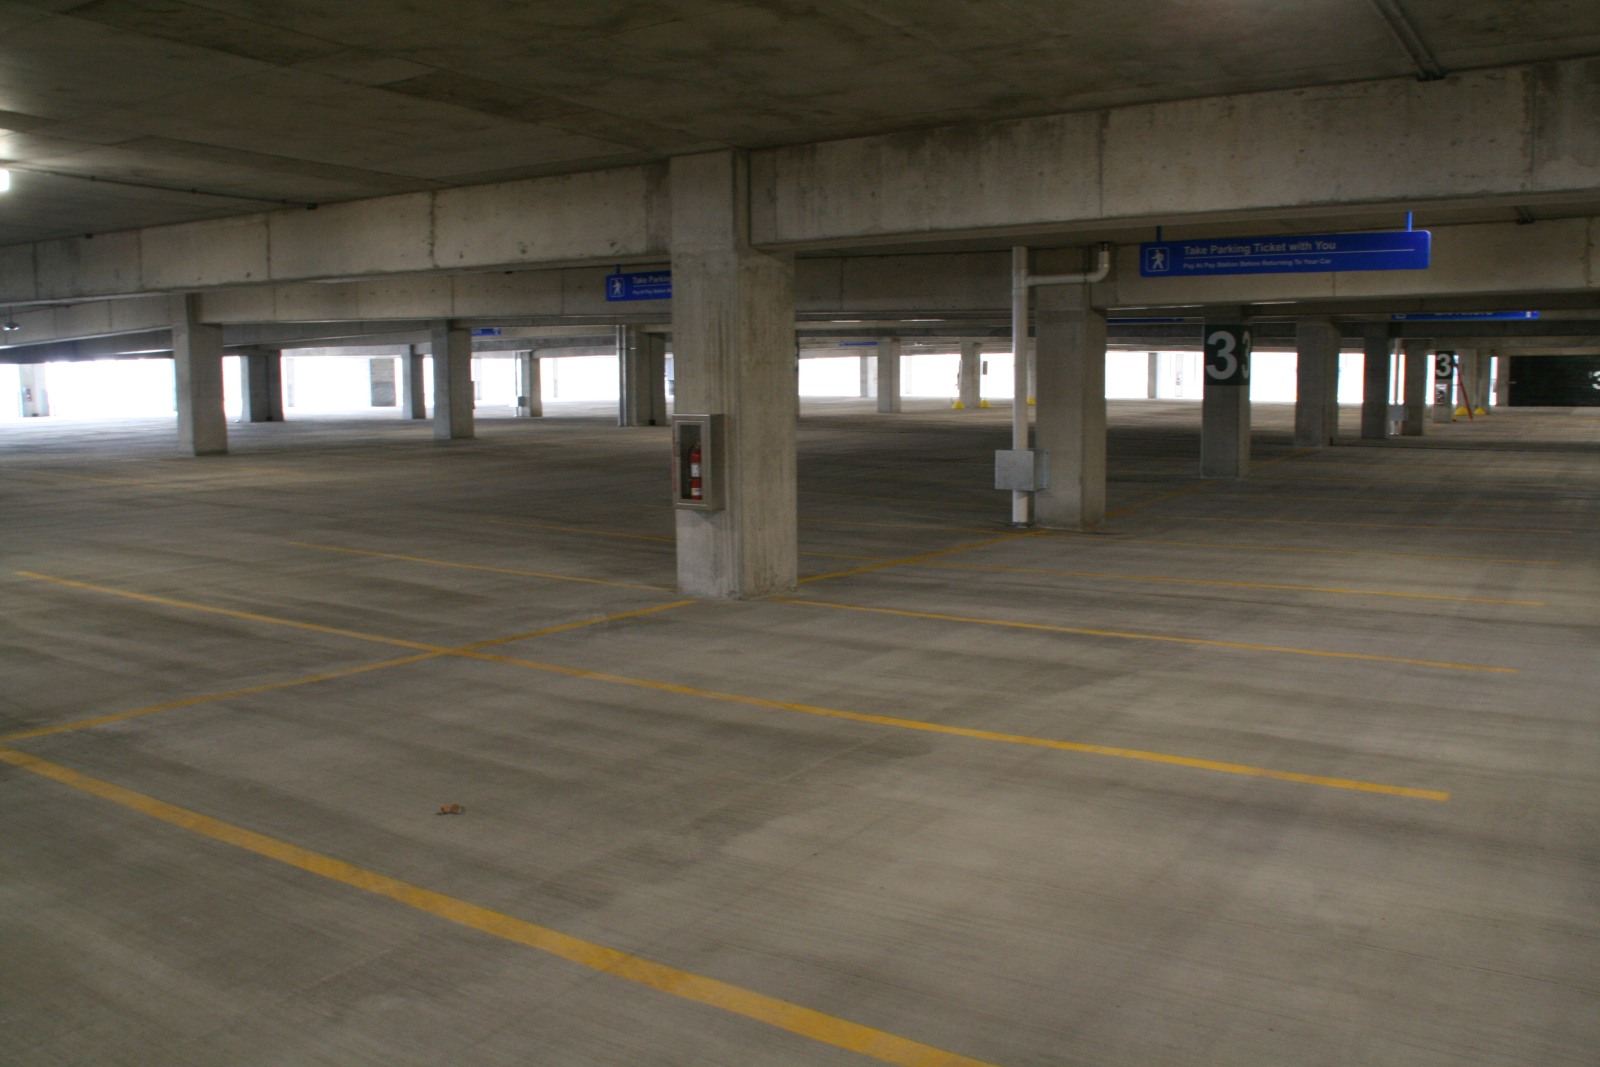 5th Street Parking Structure